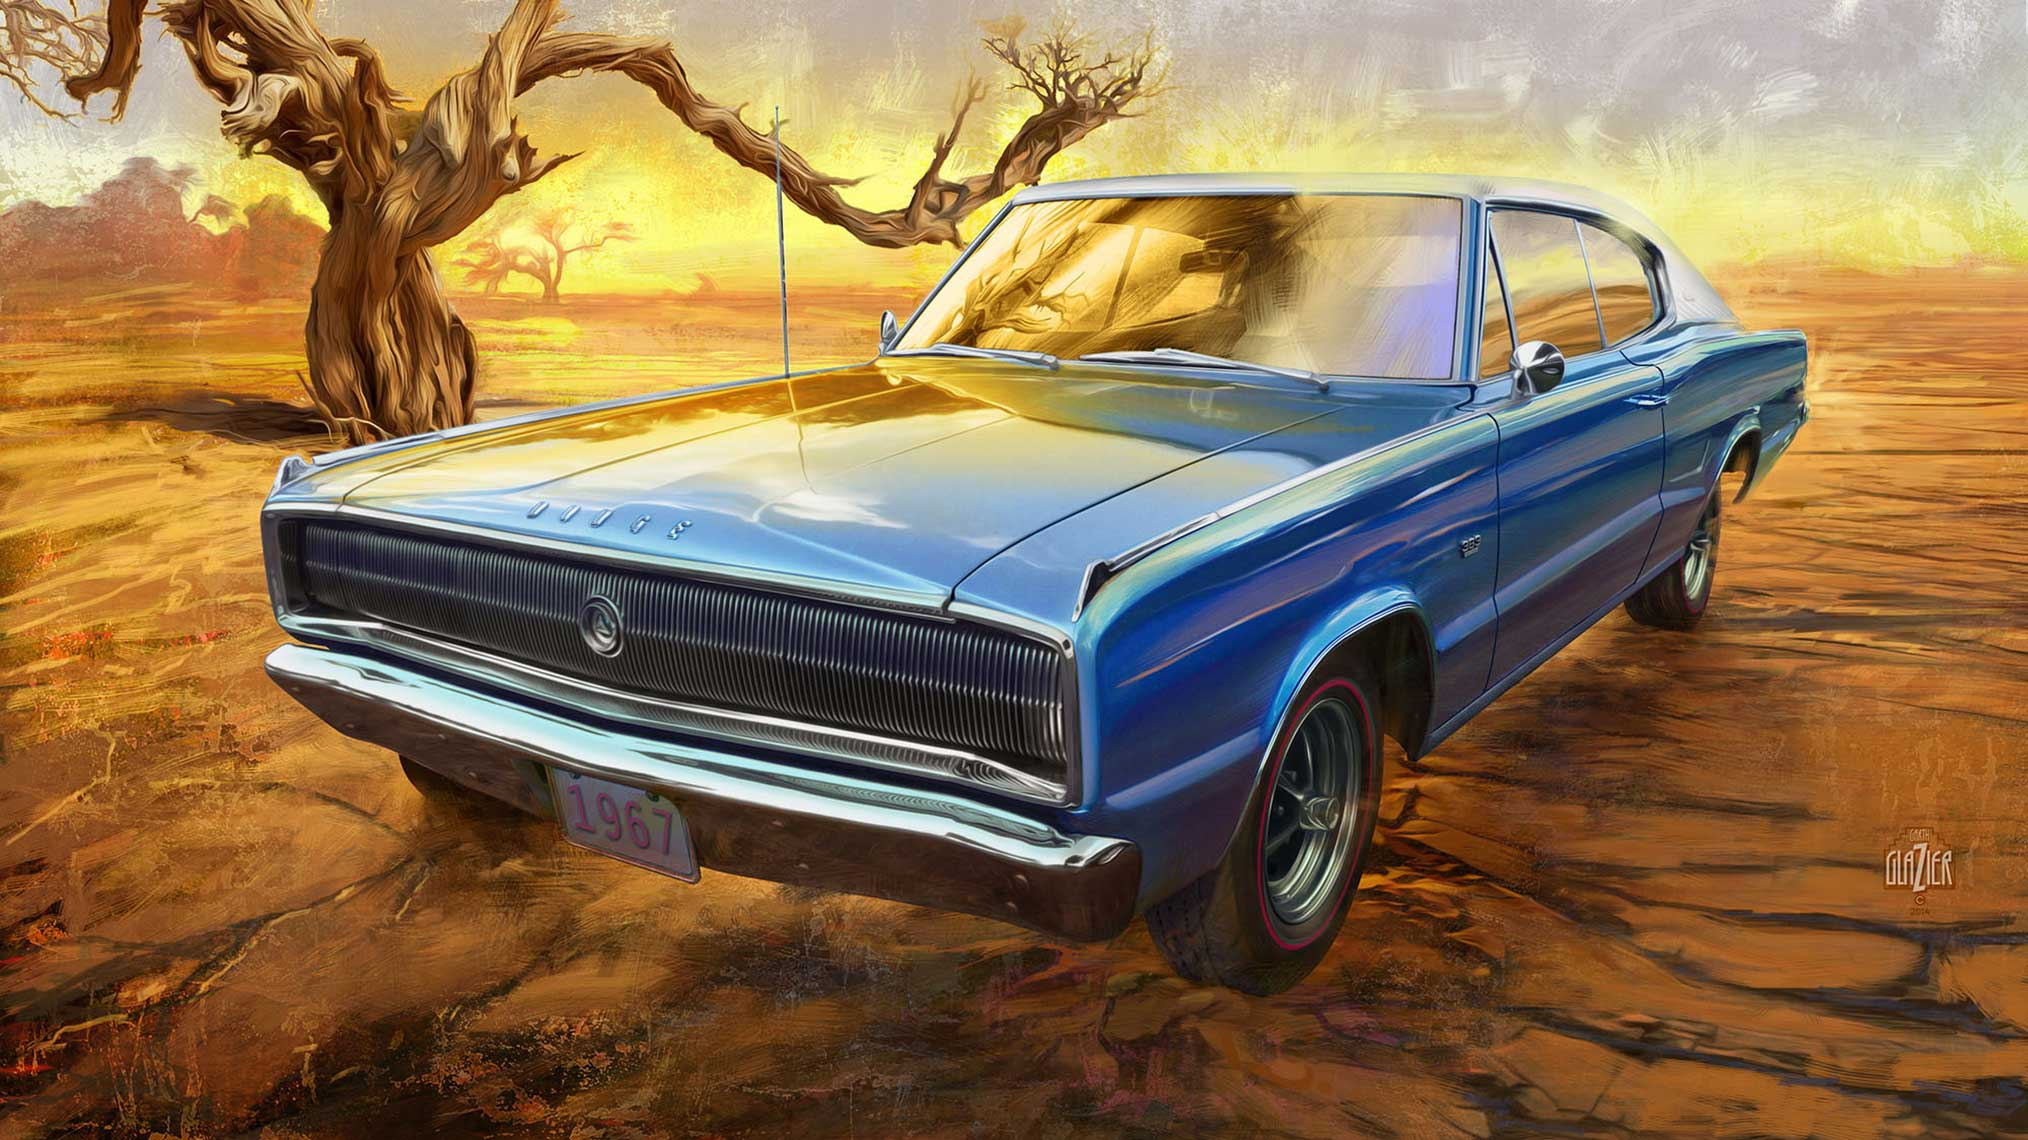 1967 MInt Dodge Charger Abandoned Near A Tree